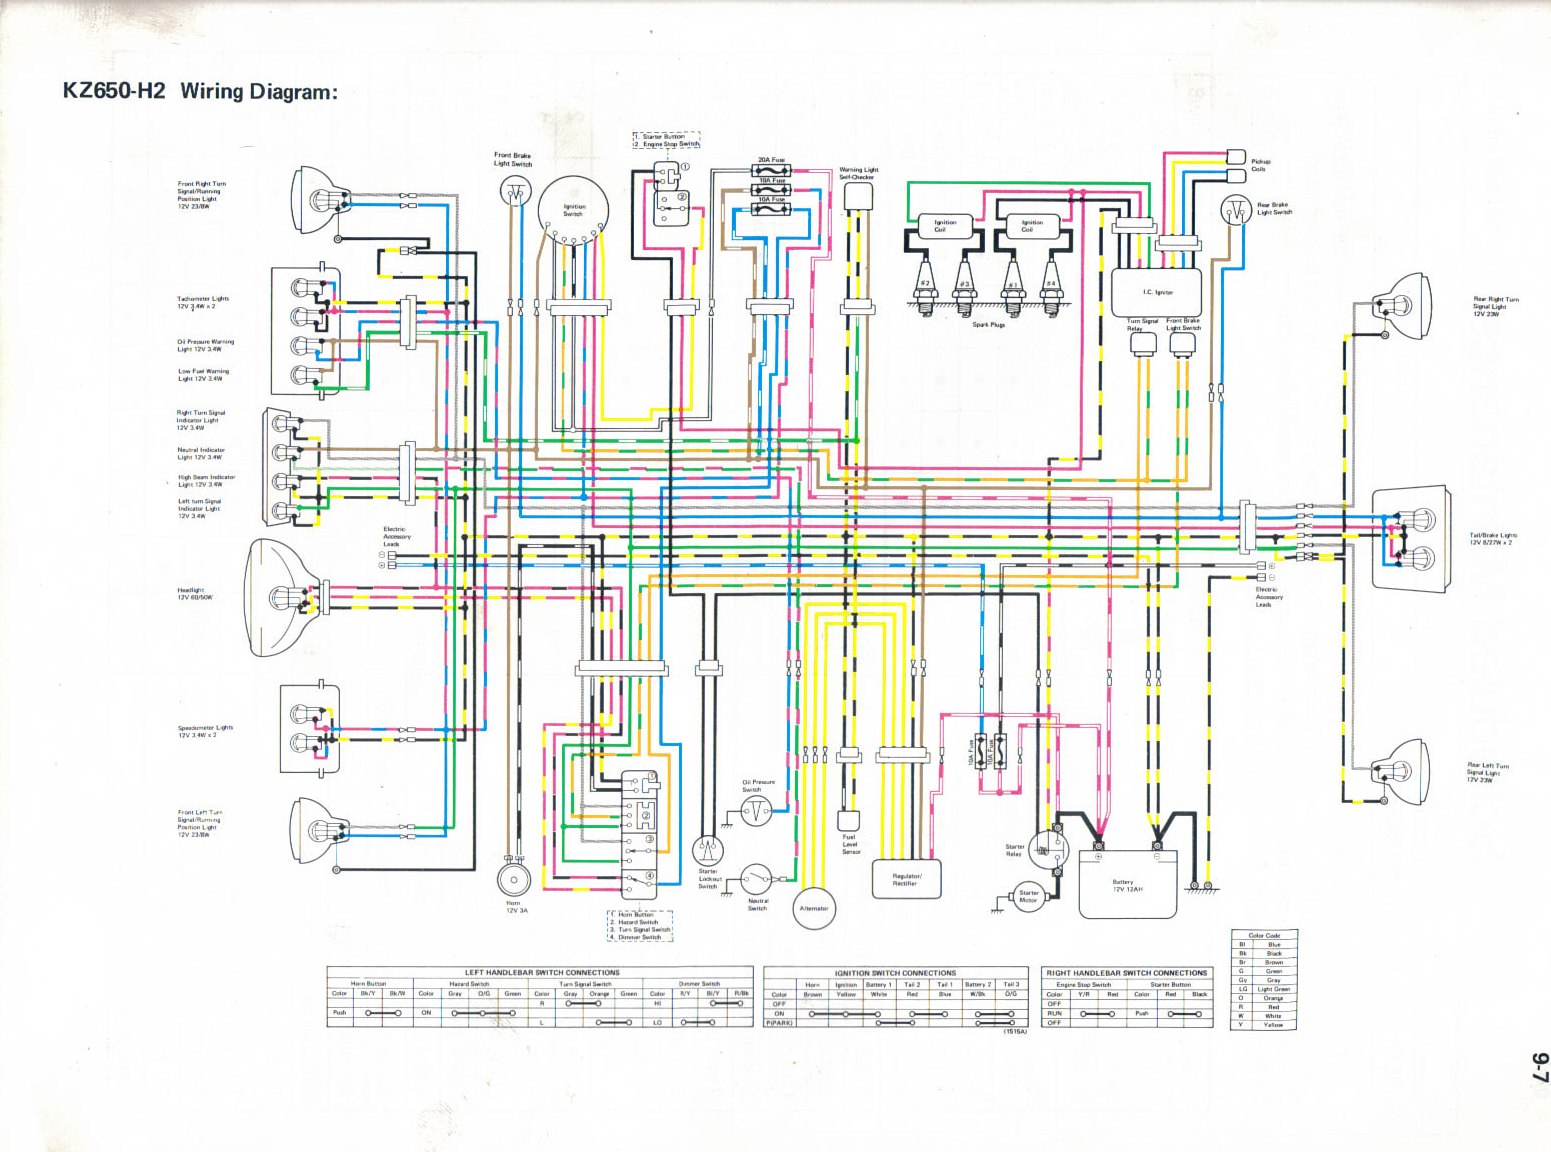 Wiring Diagram Suzuki Rgv 120 Enthusiast Diagrams Capacitor Further Washing Machine Kz650 Info Rh Malaysia Sport